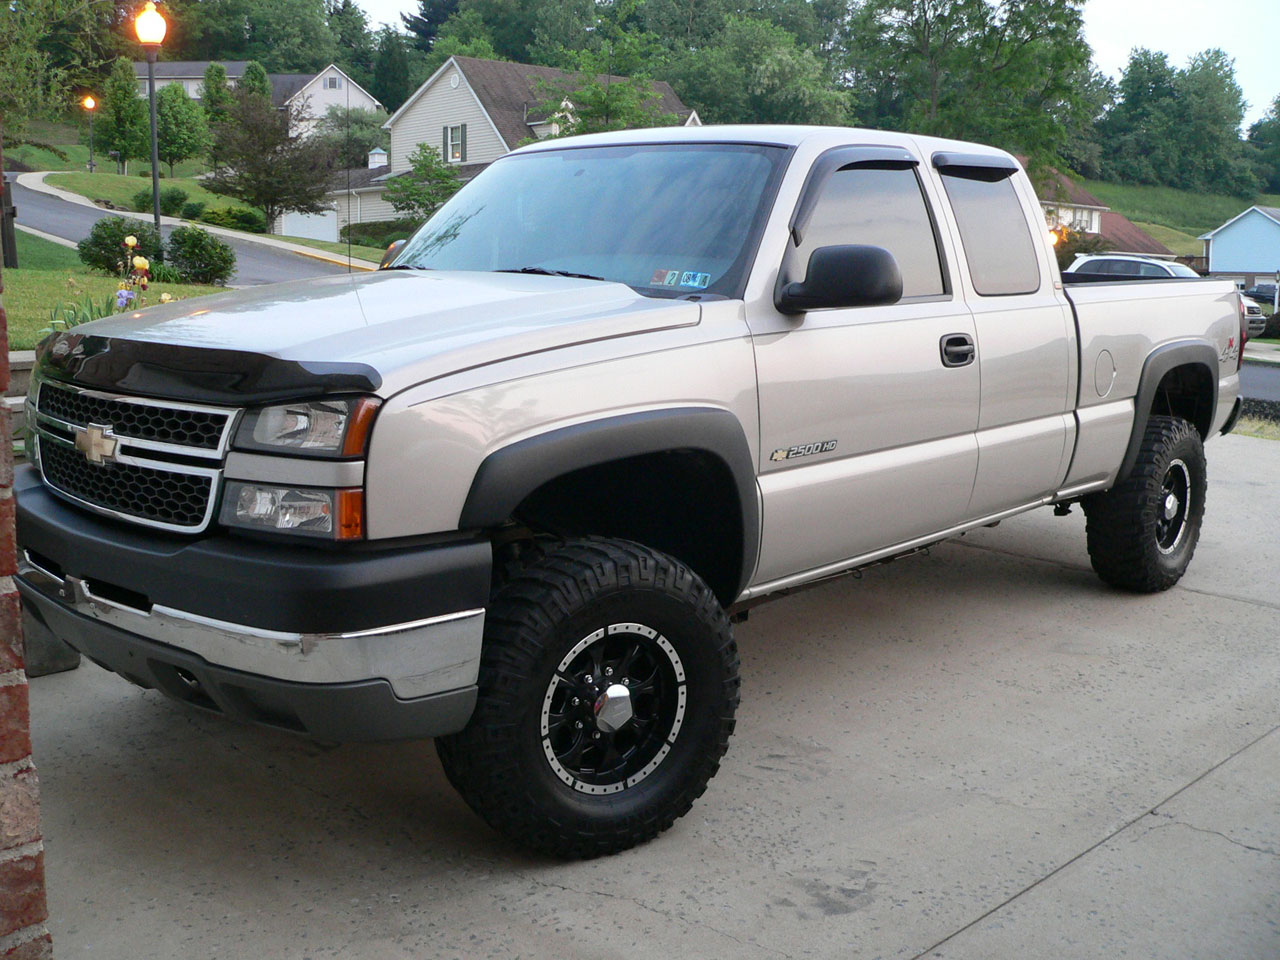 Silverado 1994 chevy silverado 2500 specs : Chevrolet Silverado 2500HD - Information and photos - MOMENTcar